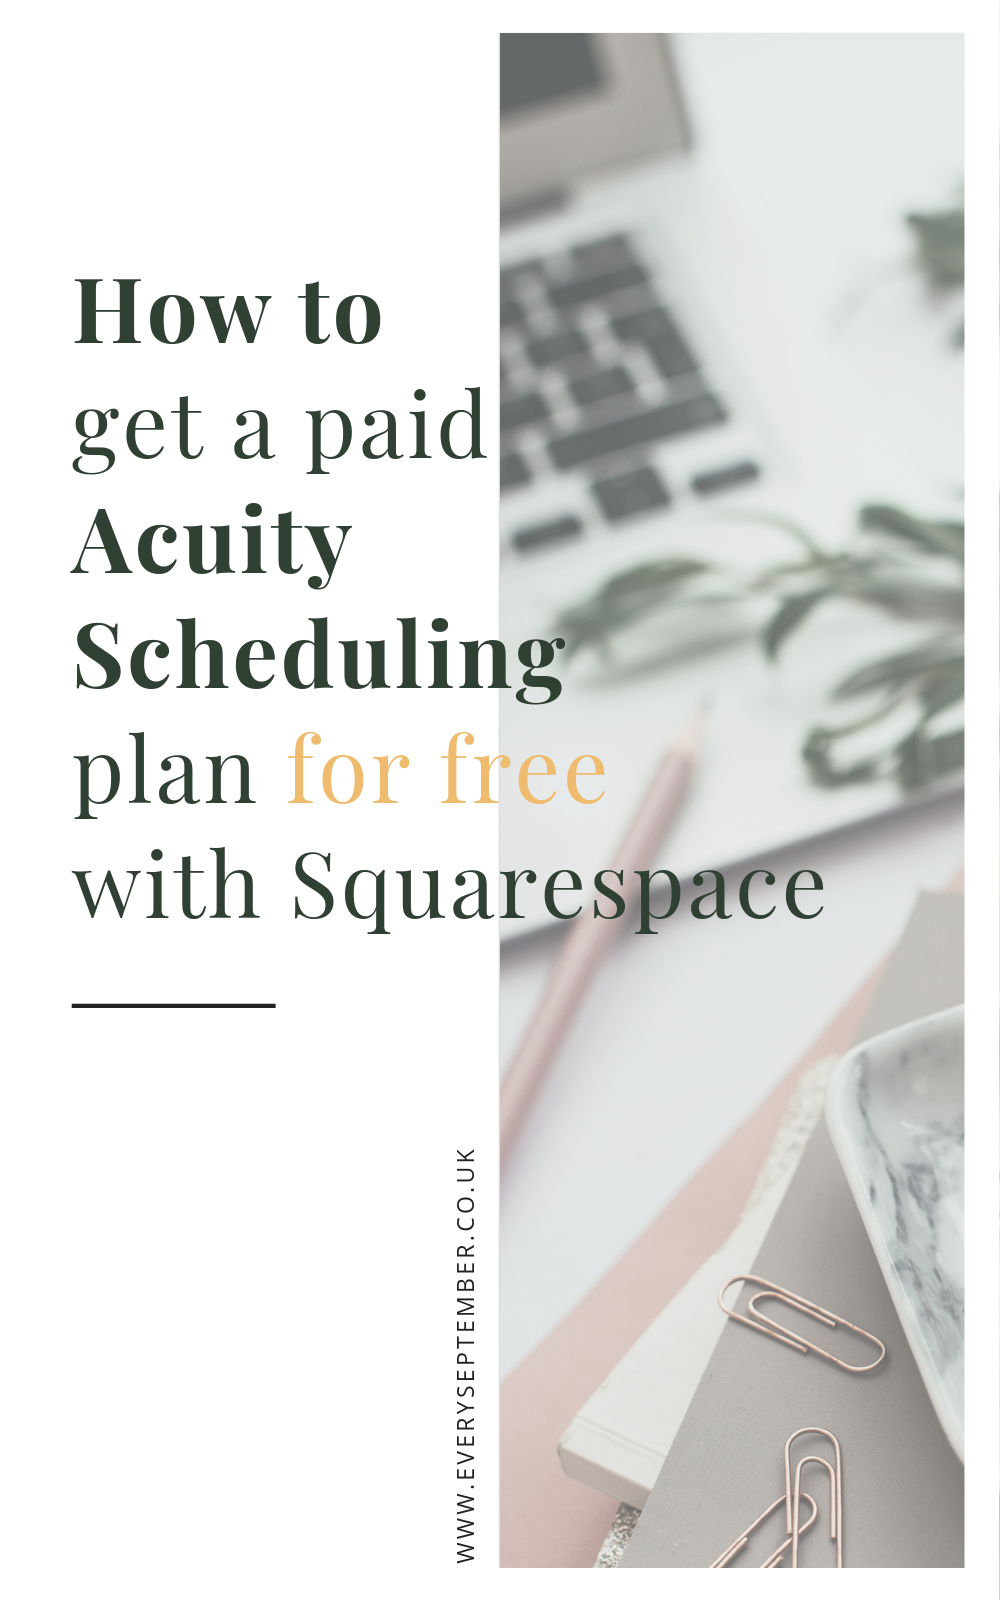 how to get a paid acuity scheduling plan for free with squarespace